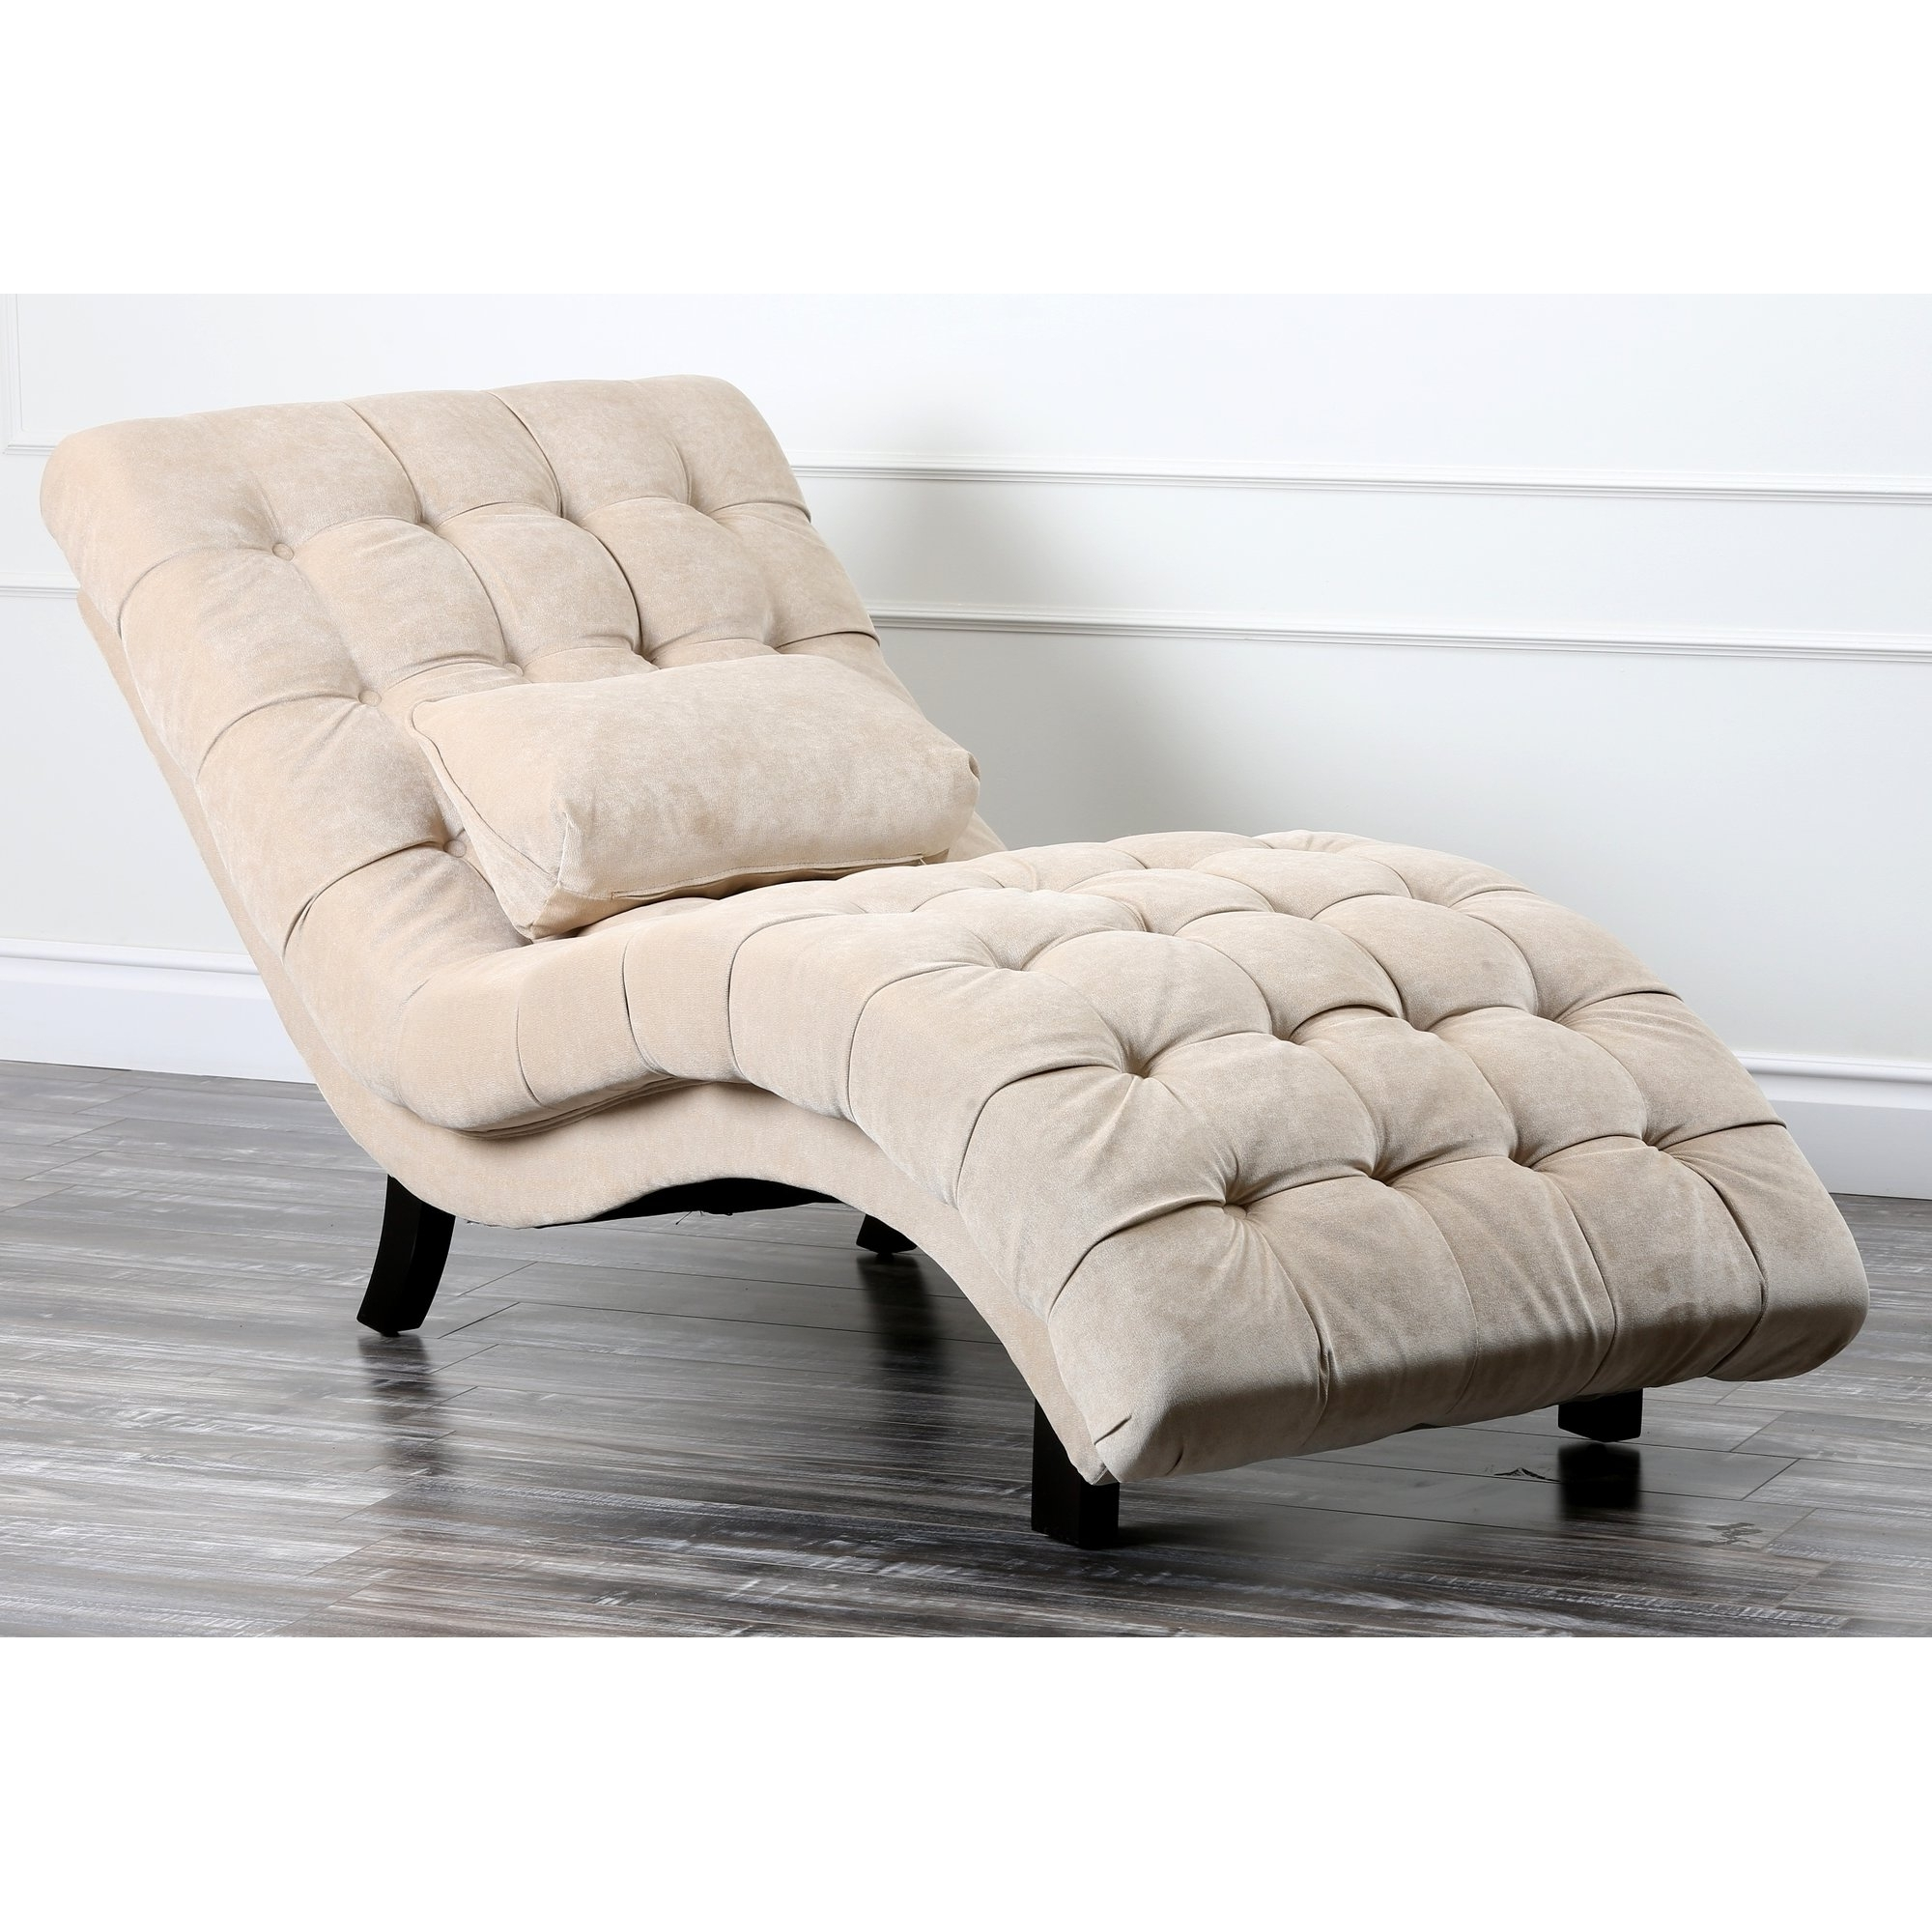 Favorite Chaise Lounge Chair Indoor • Lounge Chairs Ideas Intended For Chaise Lounge Chairs In Toronto (View 2 of 15)